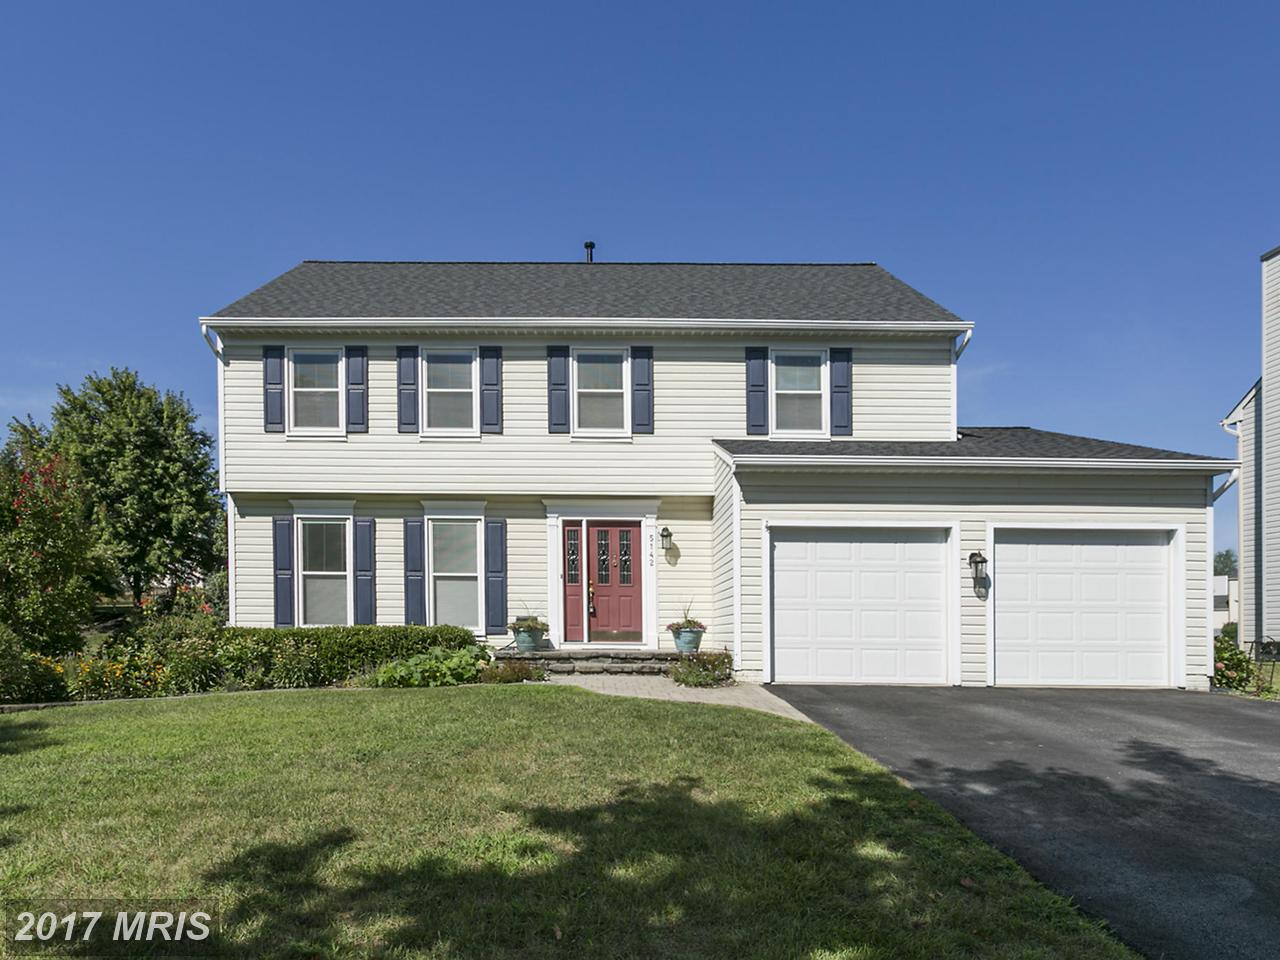 New Homes For Sale In Ellicott City Maryland